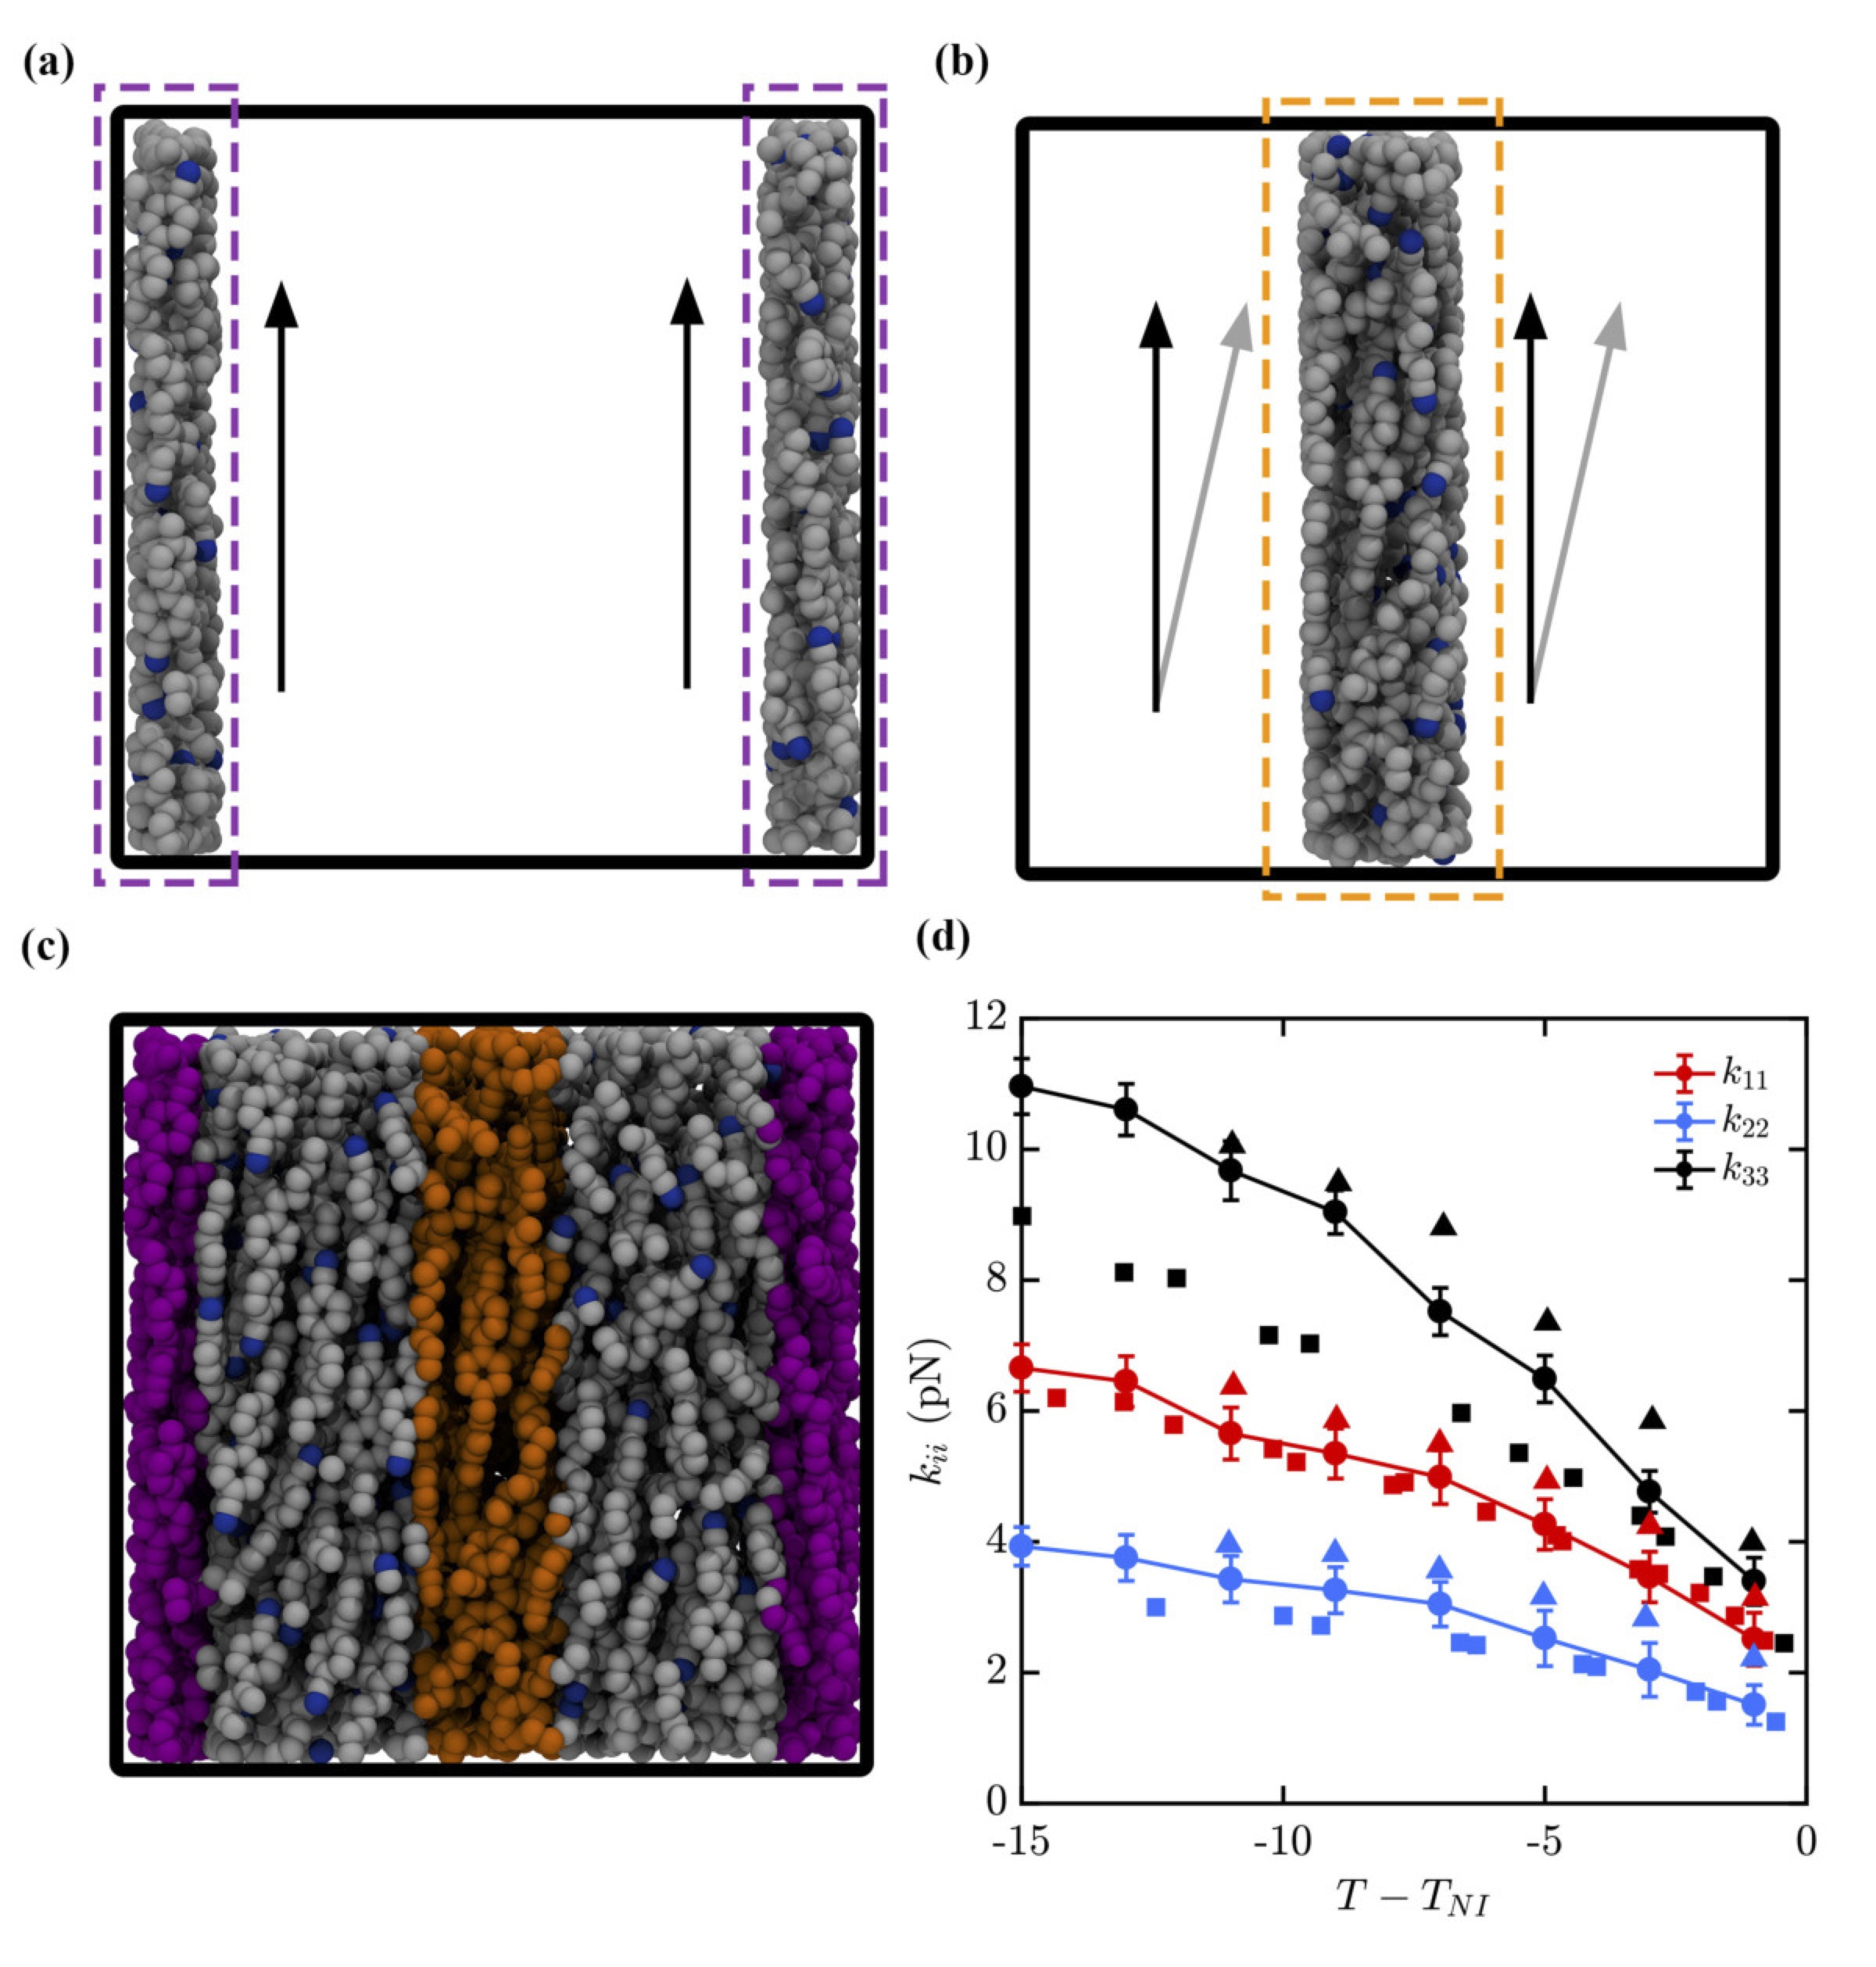 Midwest Integrated Center For Computational Materials Publications Measure External Voltage Electrical Engineering Stack Exchange In Silico Measurement Of Elastic Moduli Nematic Liquid Crystals